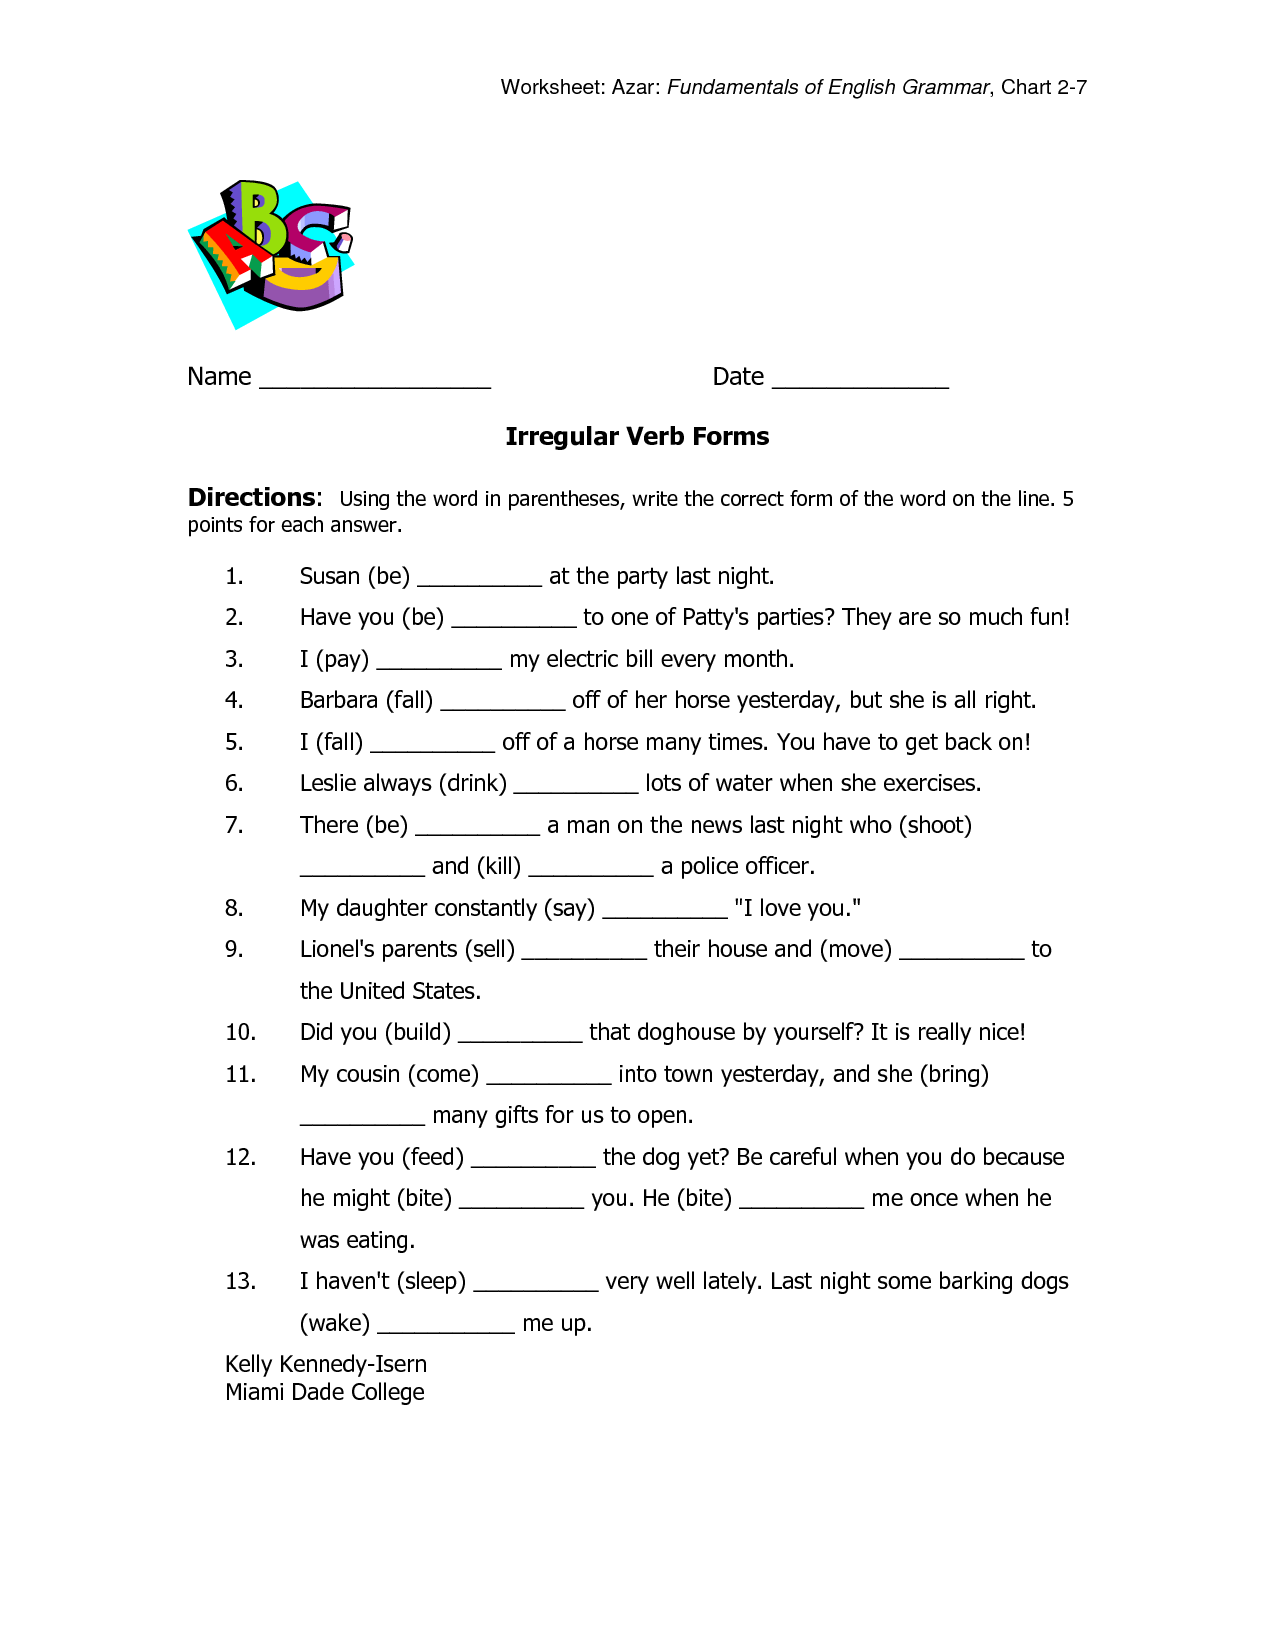 Worksheet On Simple Present Tense For Grade 5